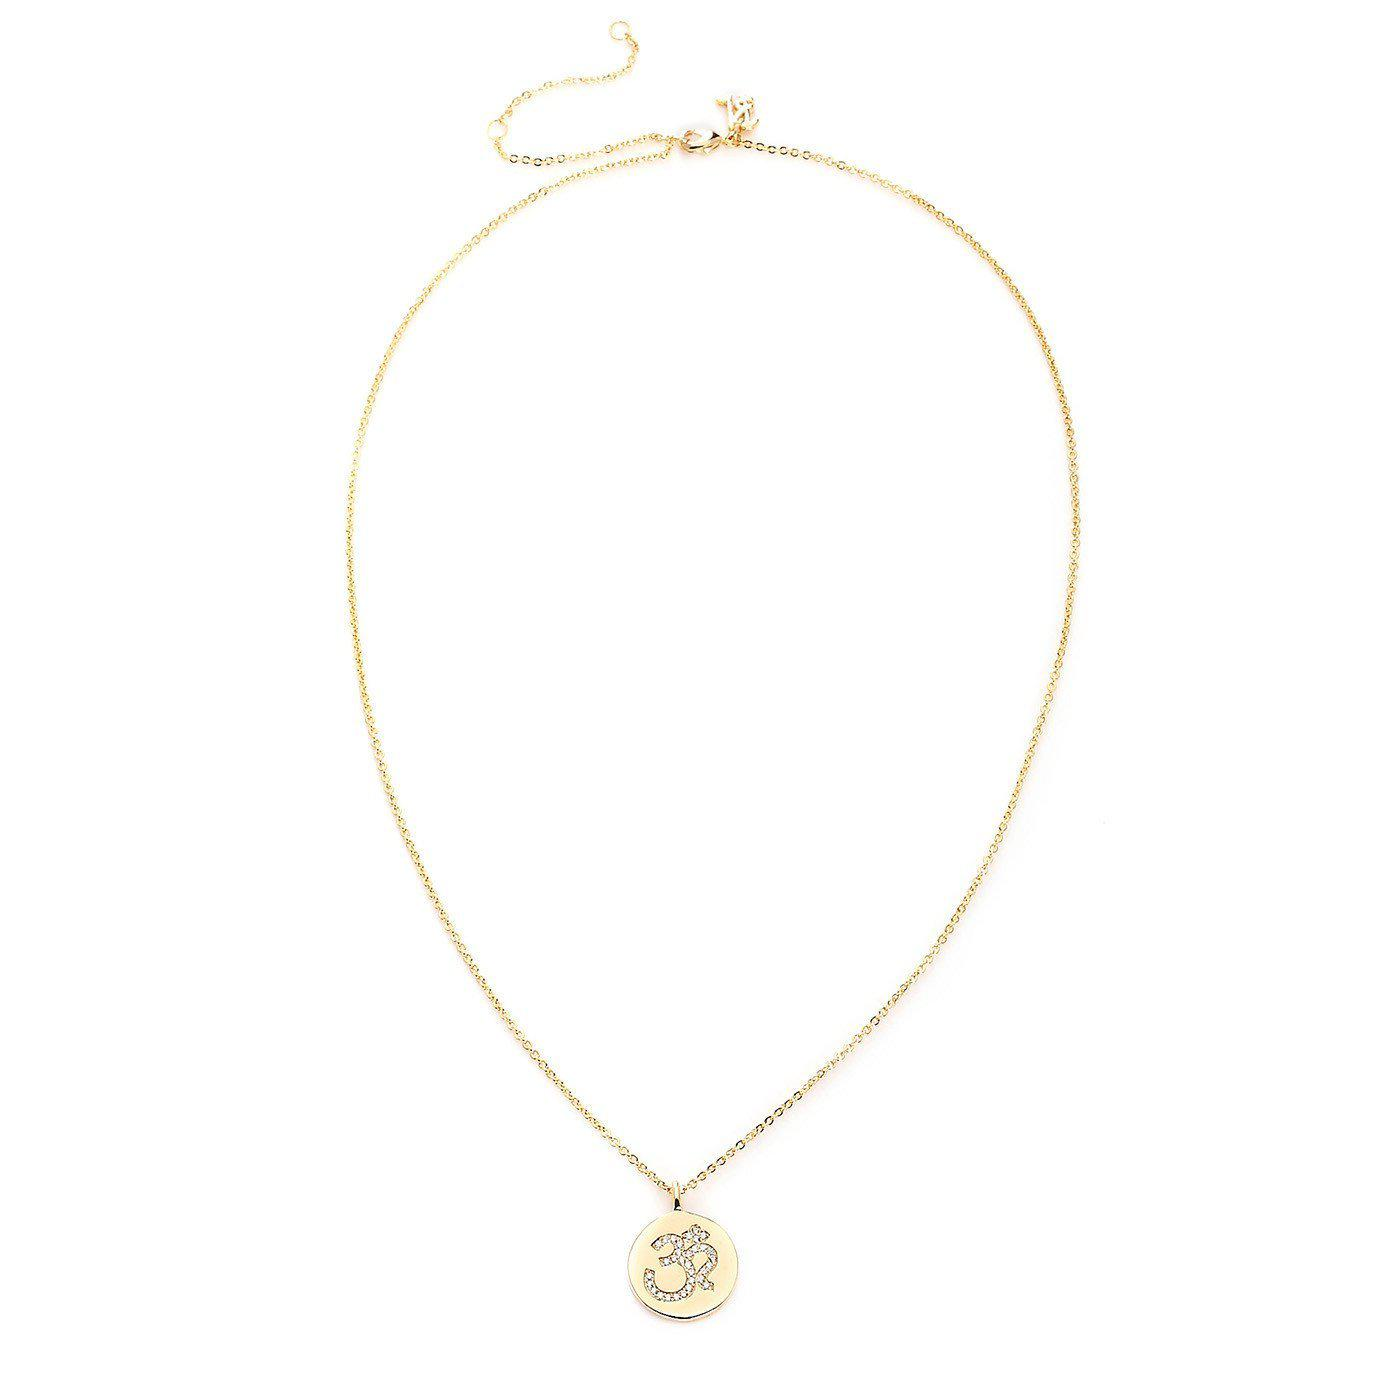 Om Elegant Fashion Pendant Necklace-Blinglane